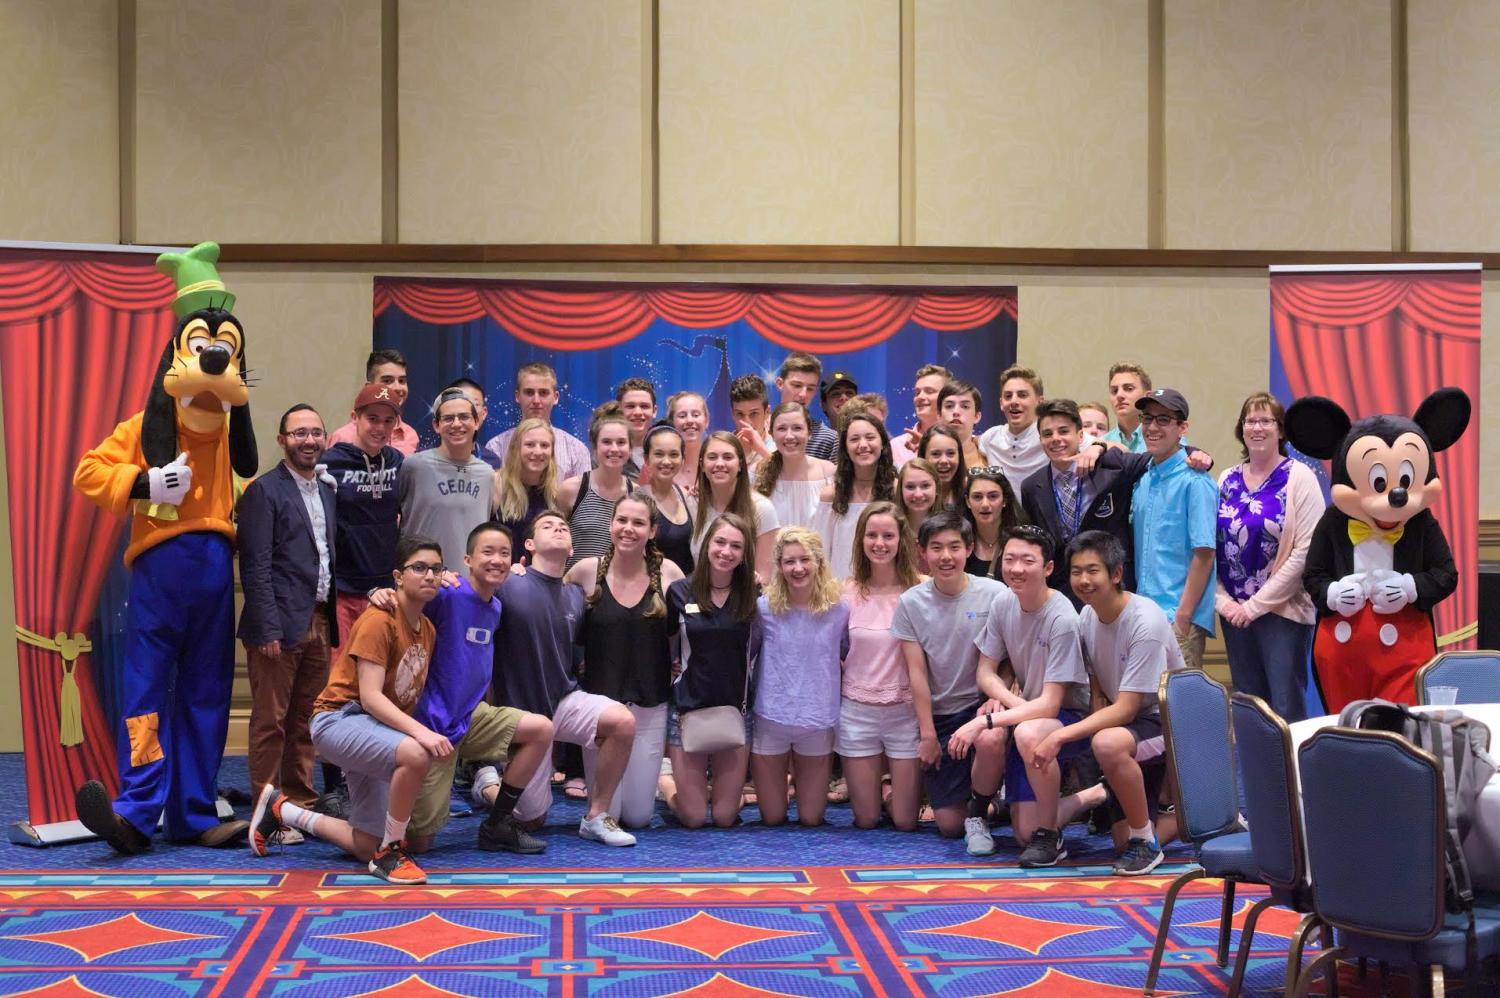 The 37 ICDC qualifiers take a trip to Anaheim, California to compete, and also got to stop in Disneyland.